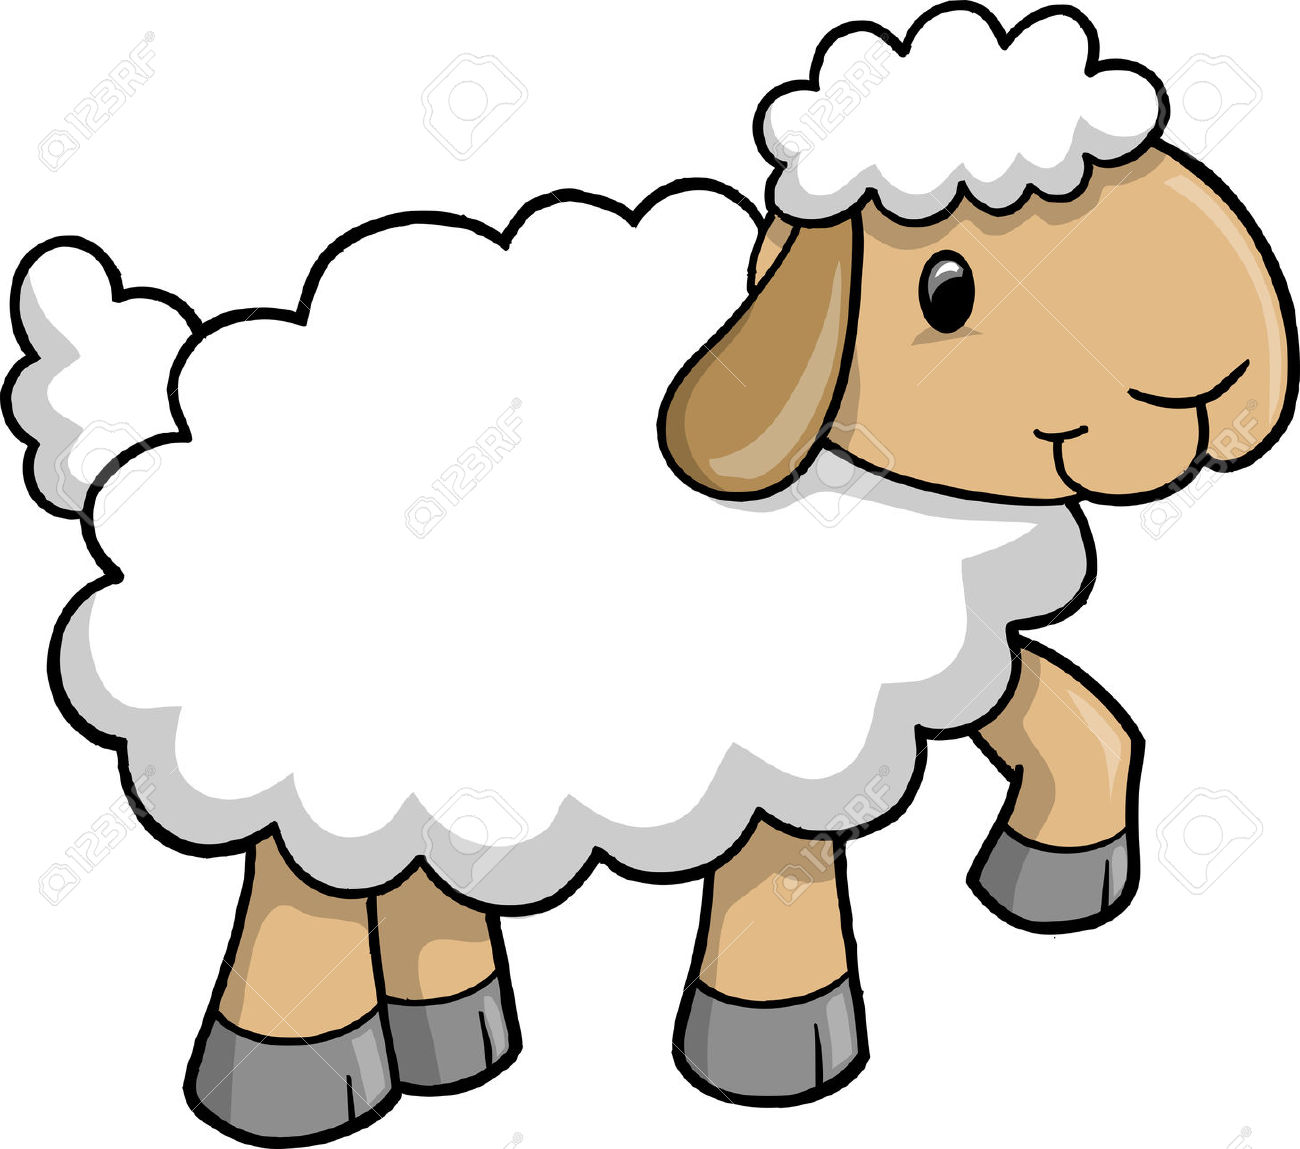 A sheep clipart svg free stock Sheep cliparts - Cliparting.com svg free stock